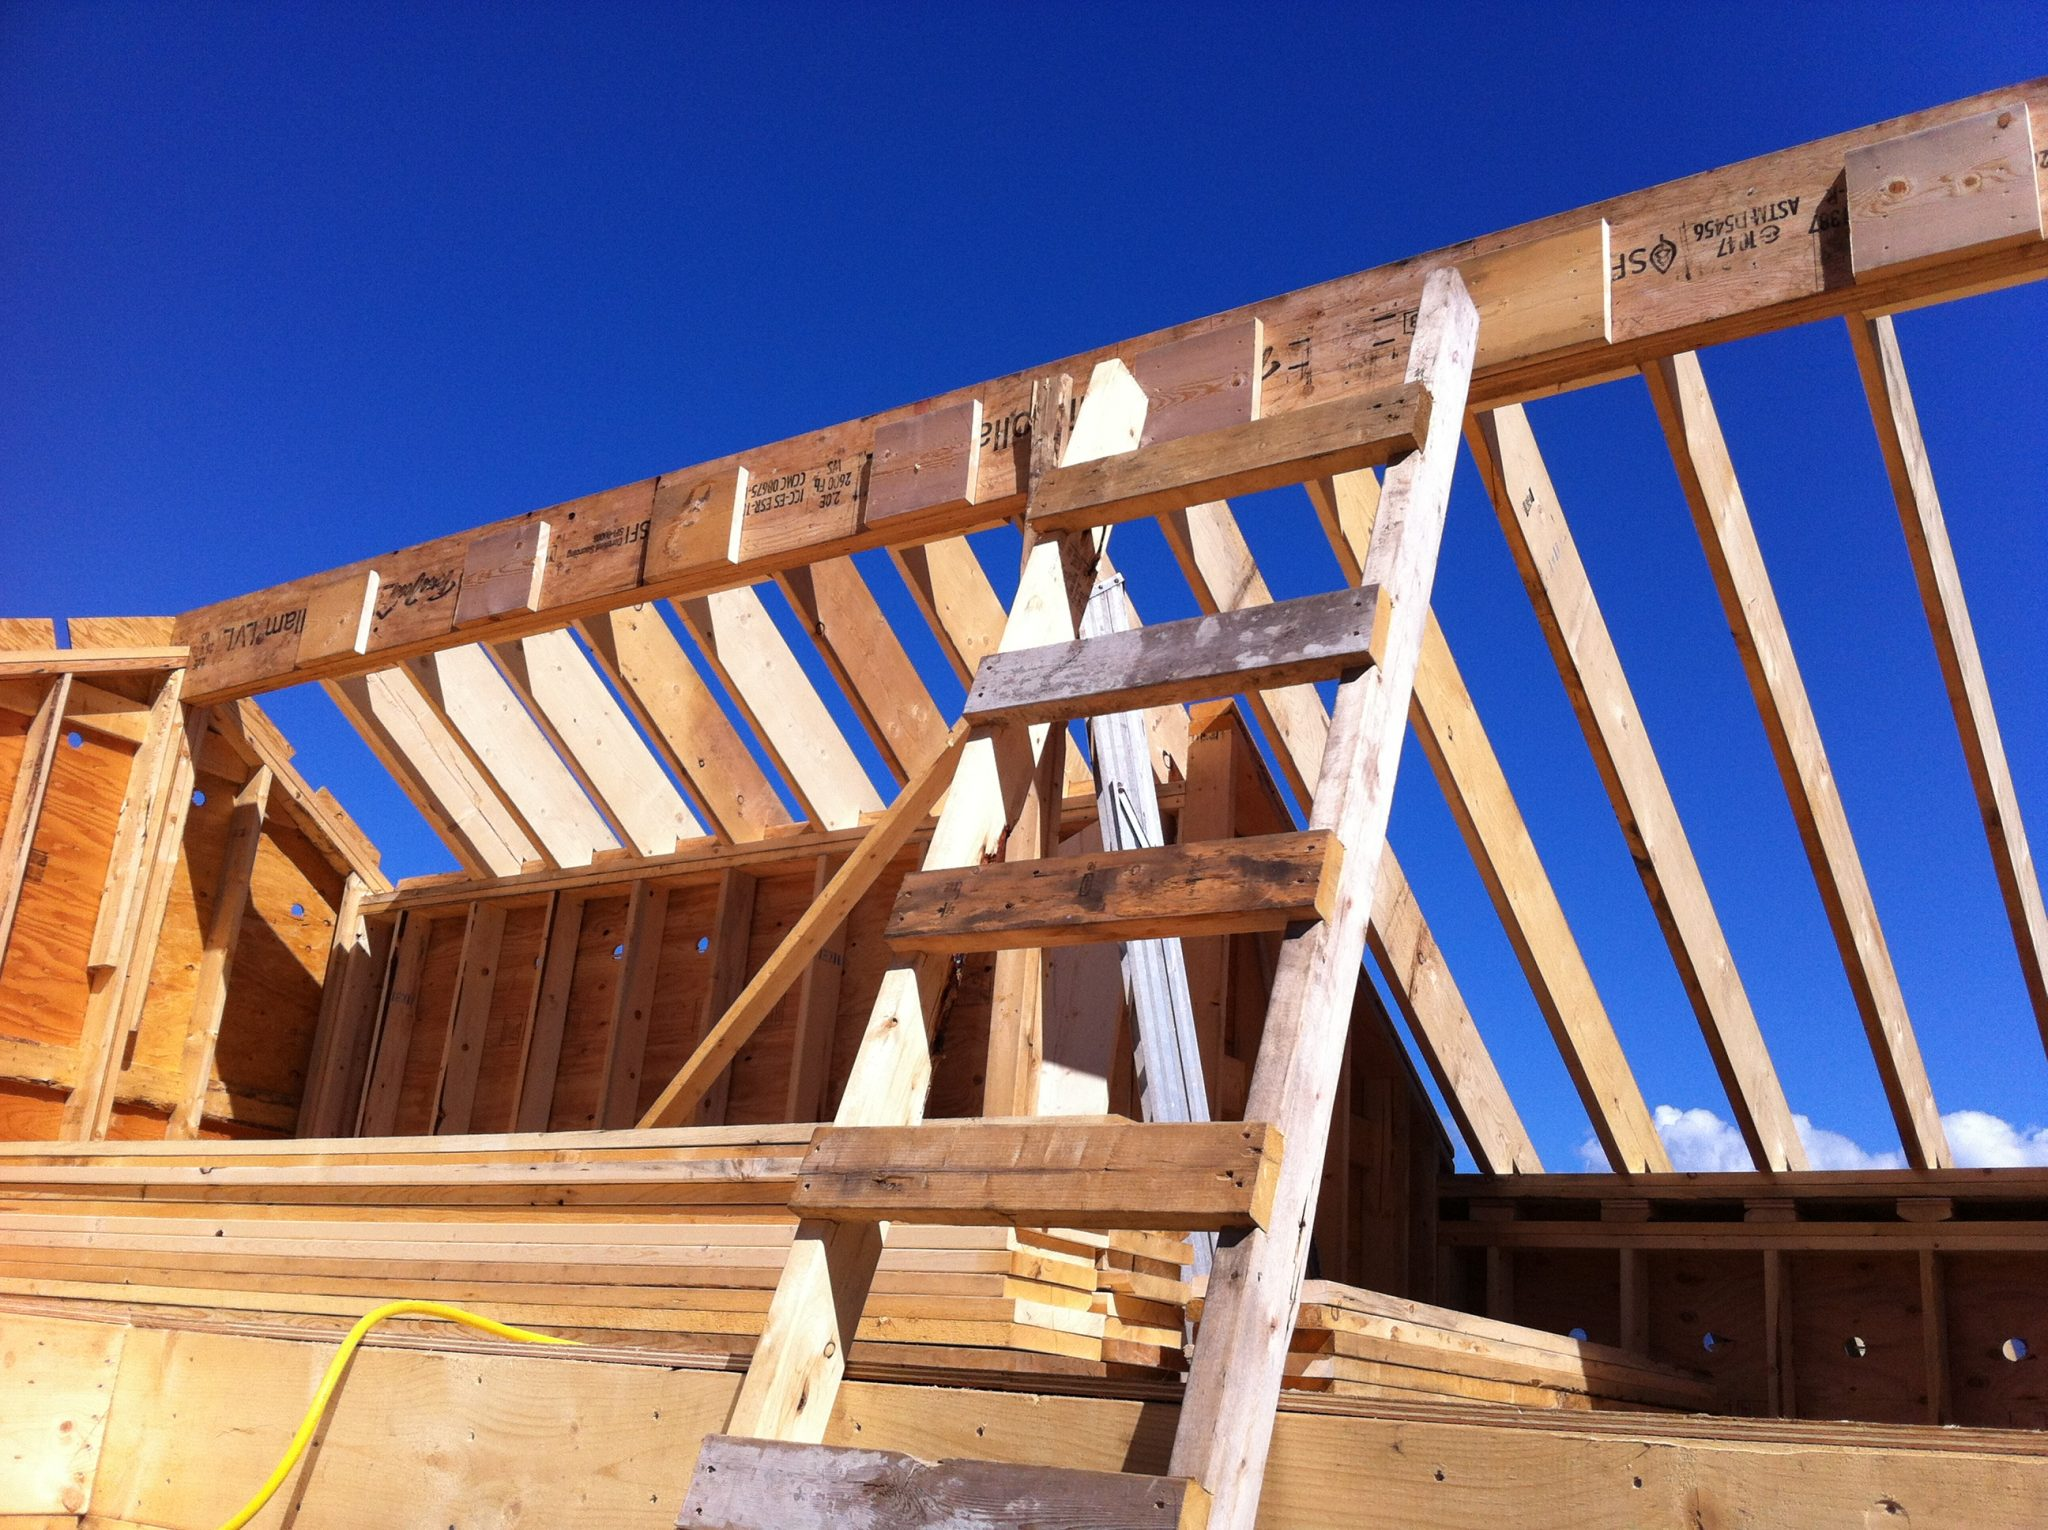 Construction Renovation roof framing Vancouver